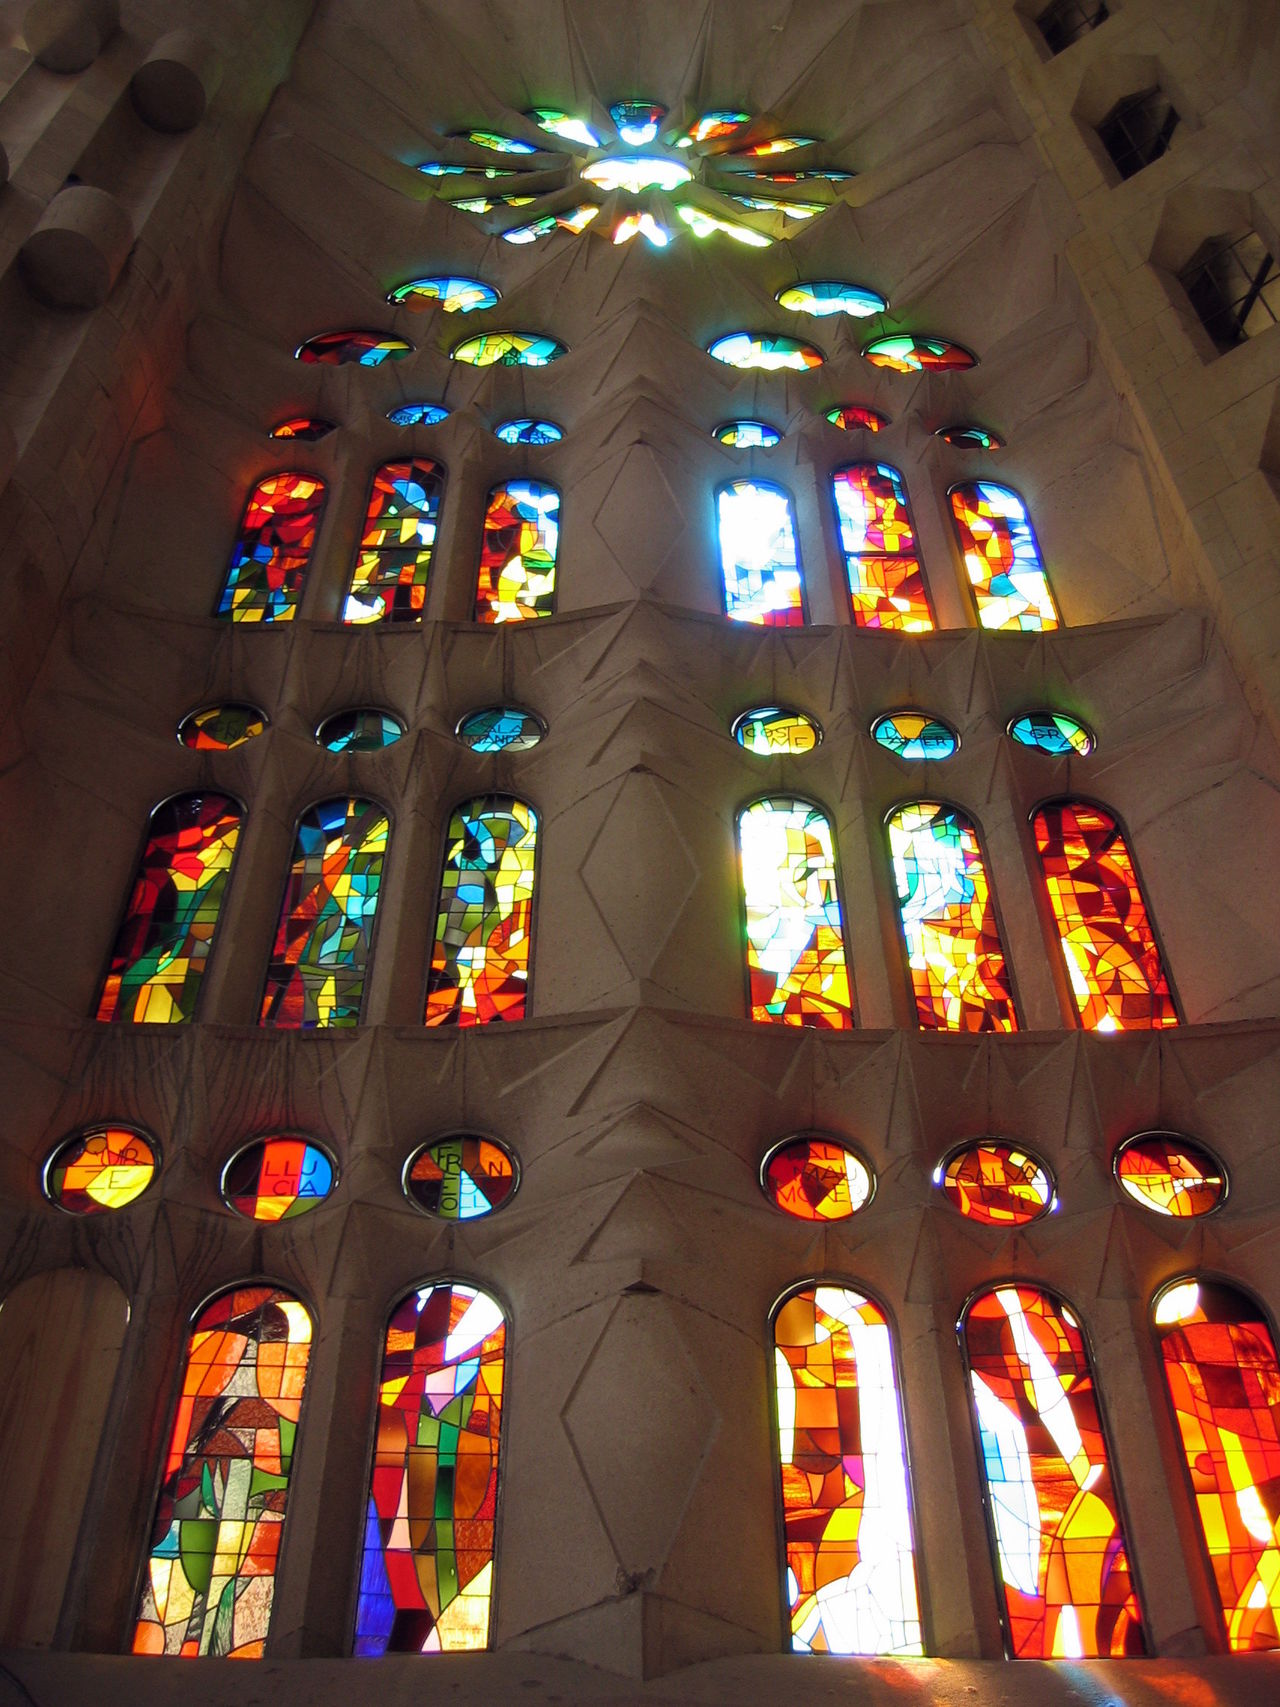 Architecture Barcelona Built Structure Cultures Day Gaudi Illuminated Indoors  Low Angle View No People Place Of Worship Religion Rose Window S Spirituality Travel Destinations